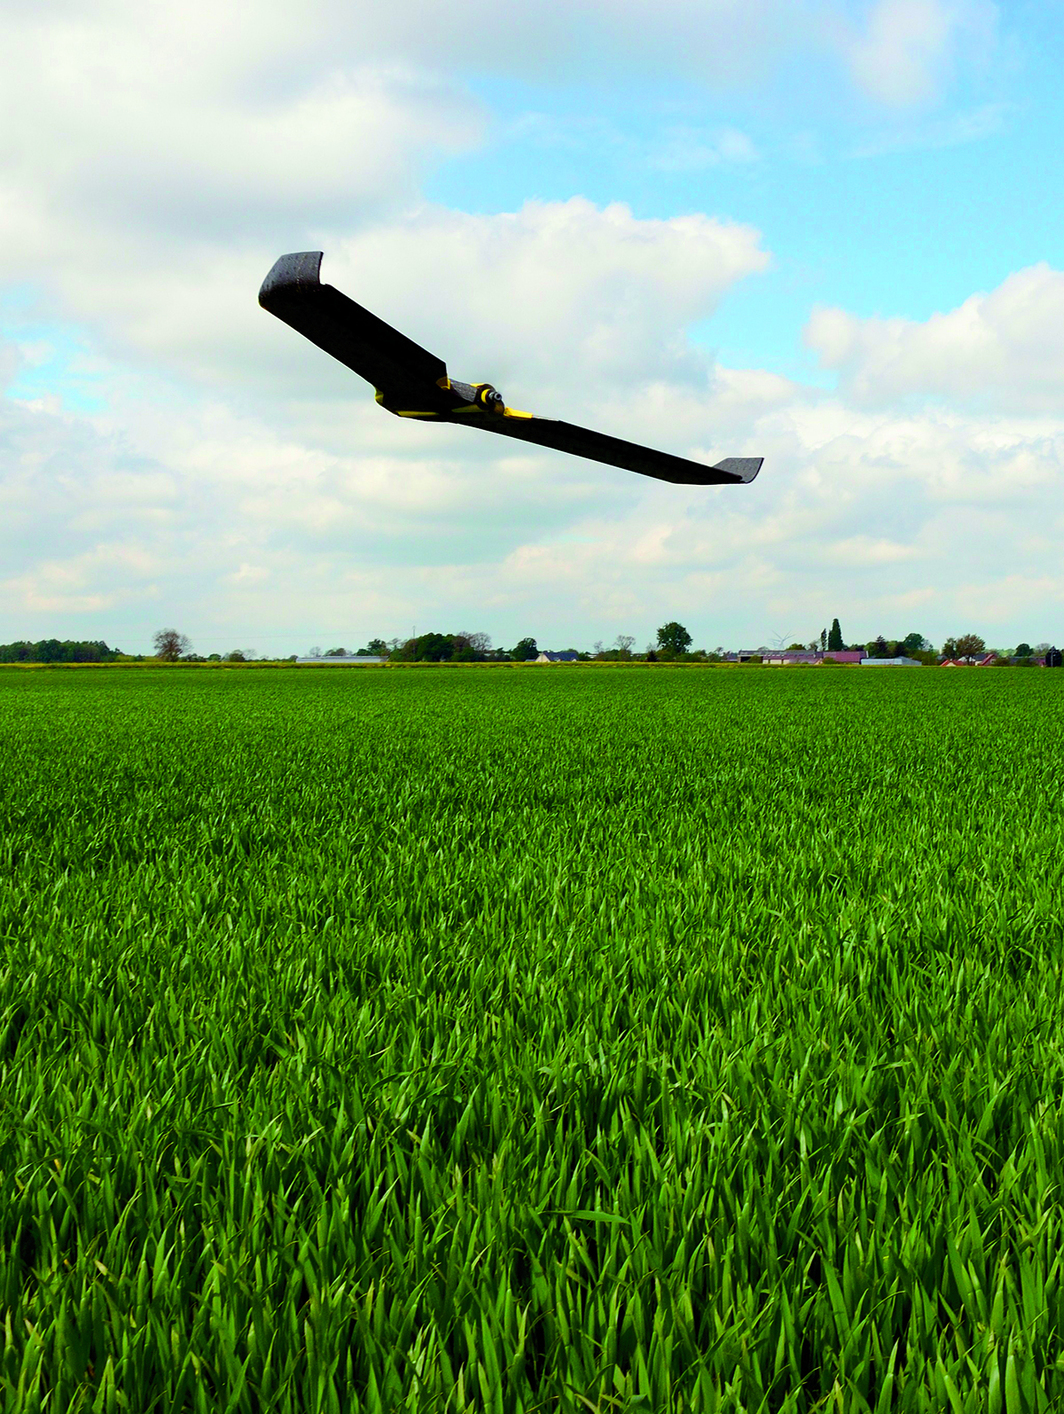 GPS-guided drone surveying crops and measuring the supply of nitrogen necessary to improve productivity, Caulières, France, May 6, 2014. Photo: Denis Charlet/AFP/Getty Images.